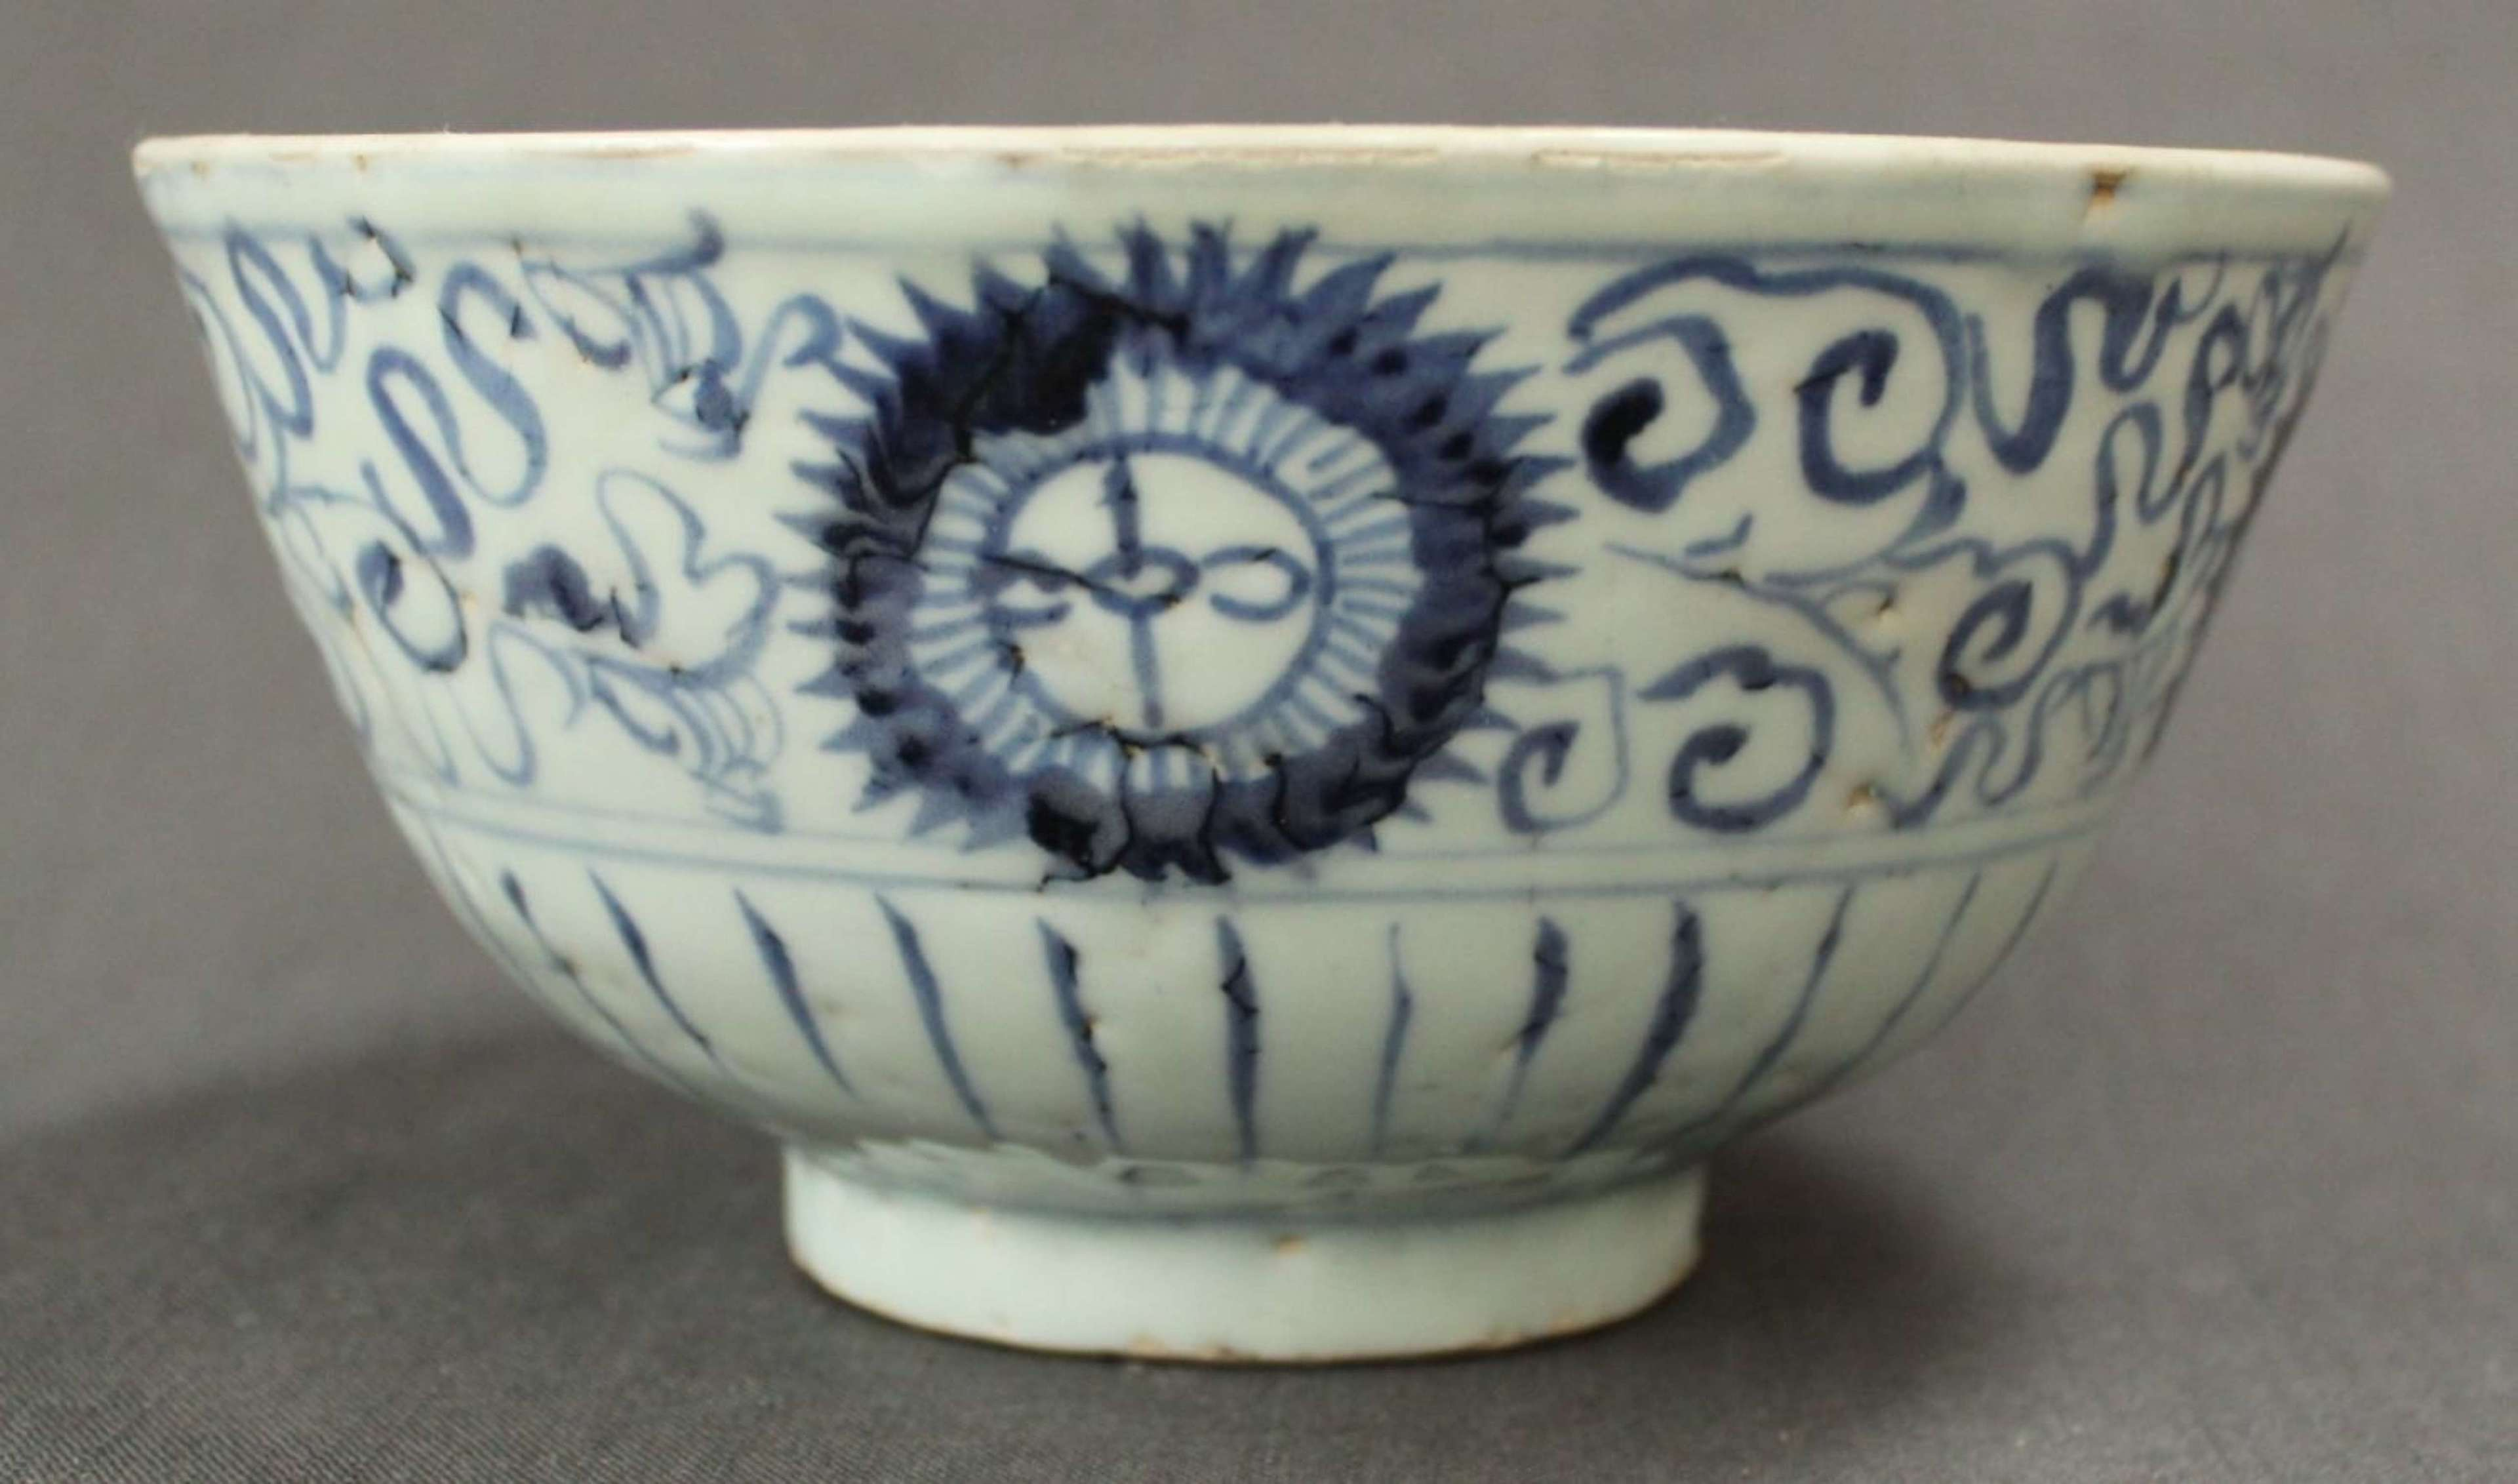 A Chinese Transitional Period bowl